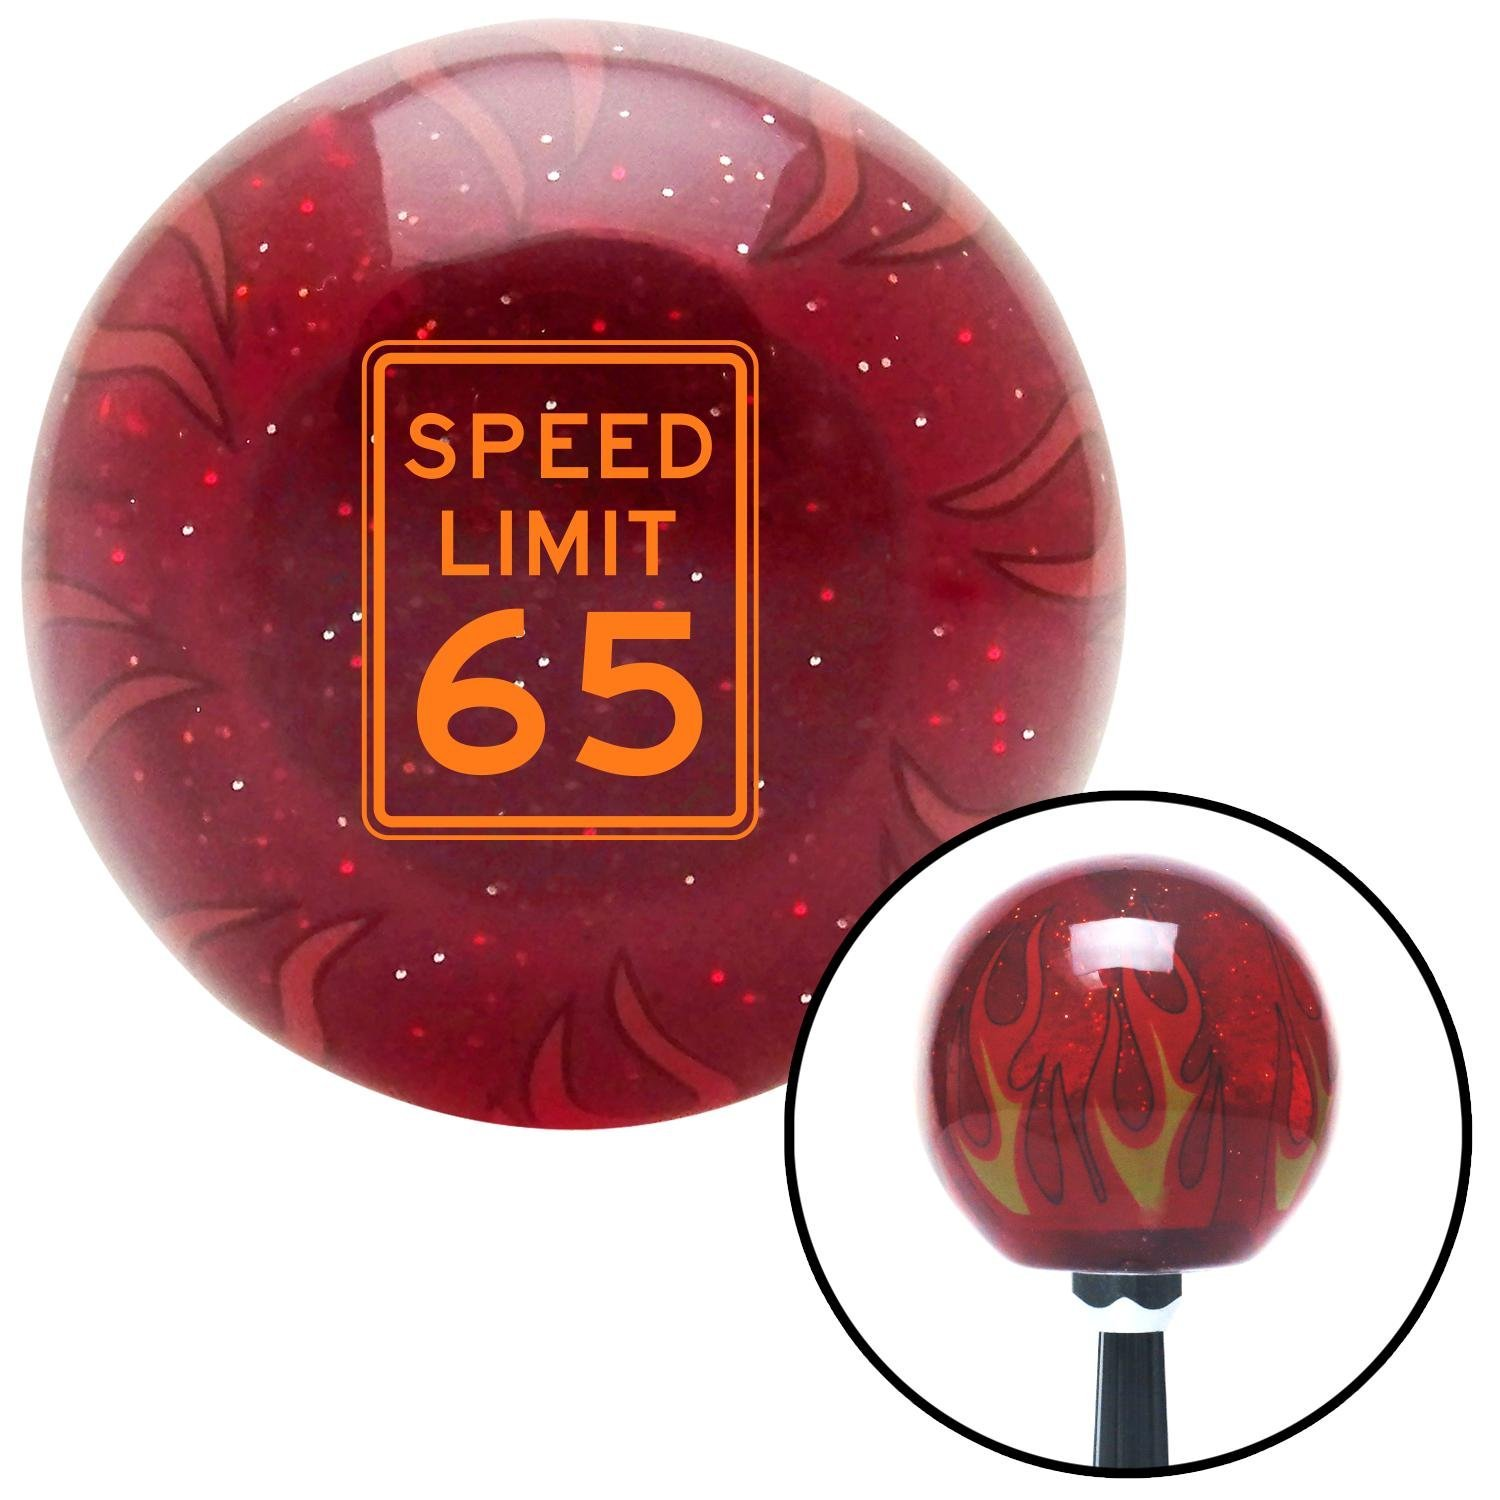 Orange Speed Limit 65 American Shifter 239863 Red Flame Metal Flake Shift Knob with M16 x 1.5 Insert